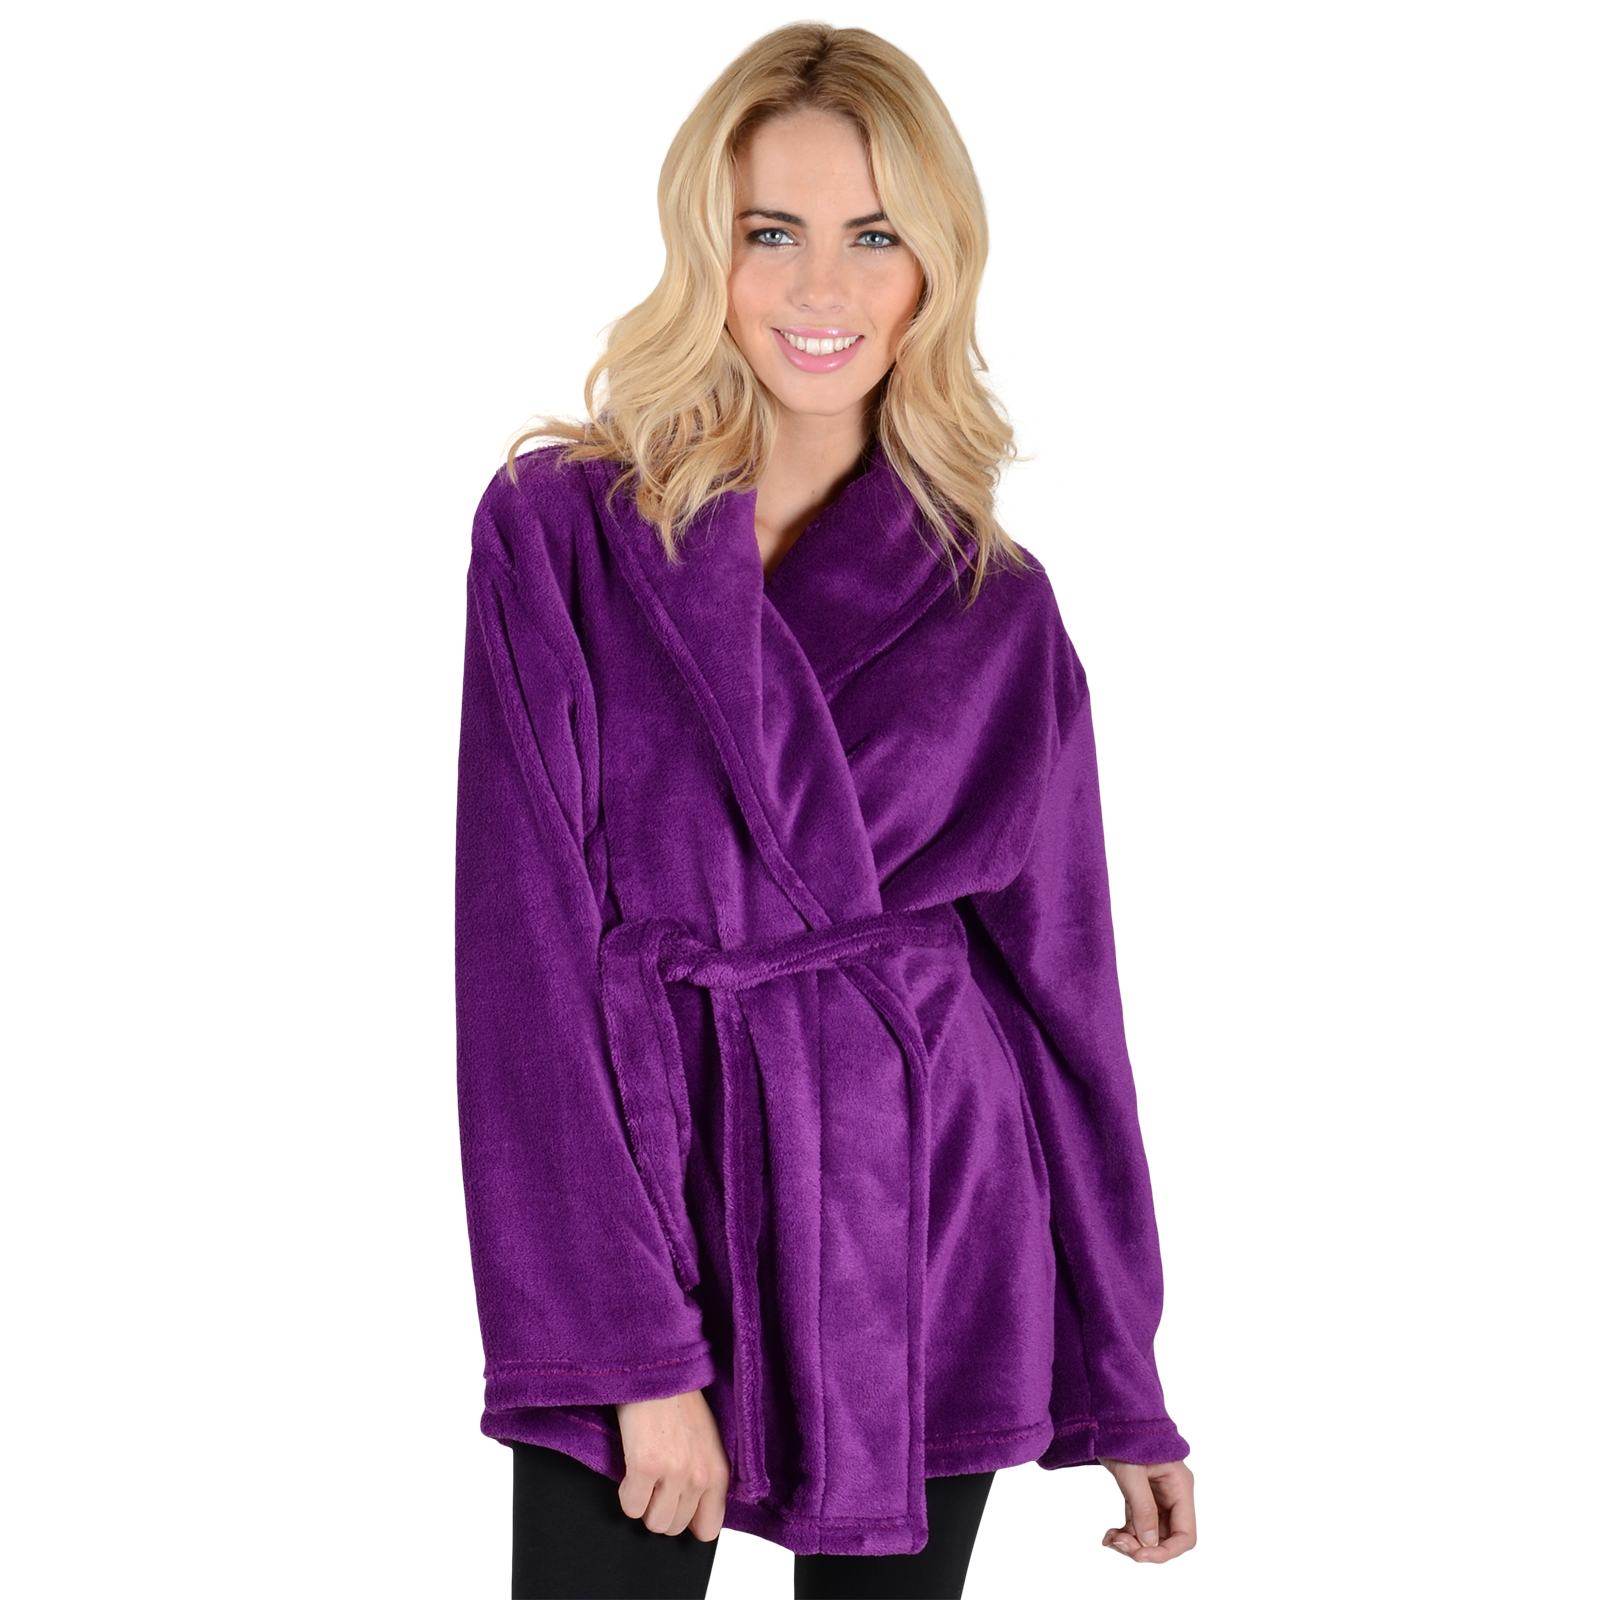 Ladies Luxury Fleece Mini Short Bath Robe Housecoat Dressing Gown Wrap Bathrobe